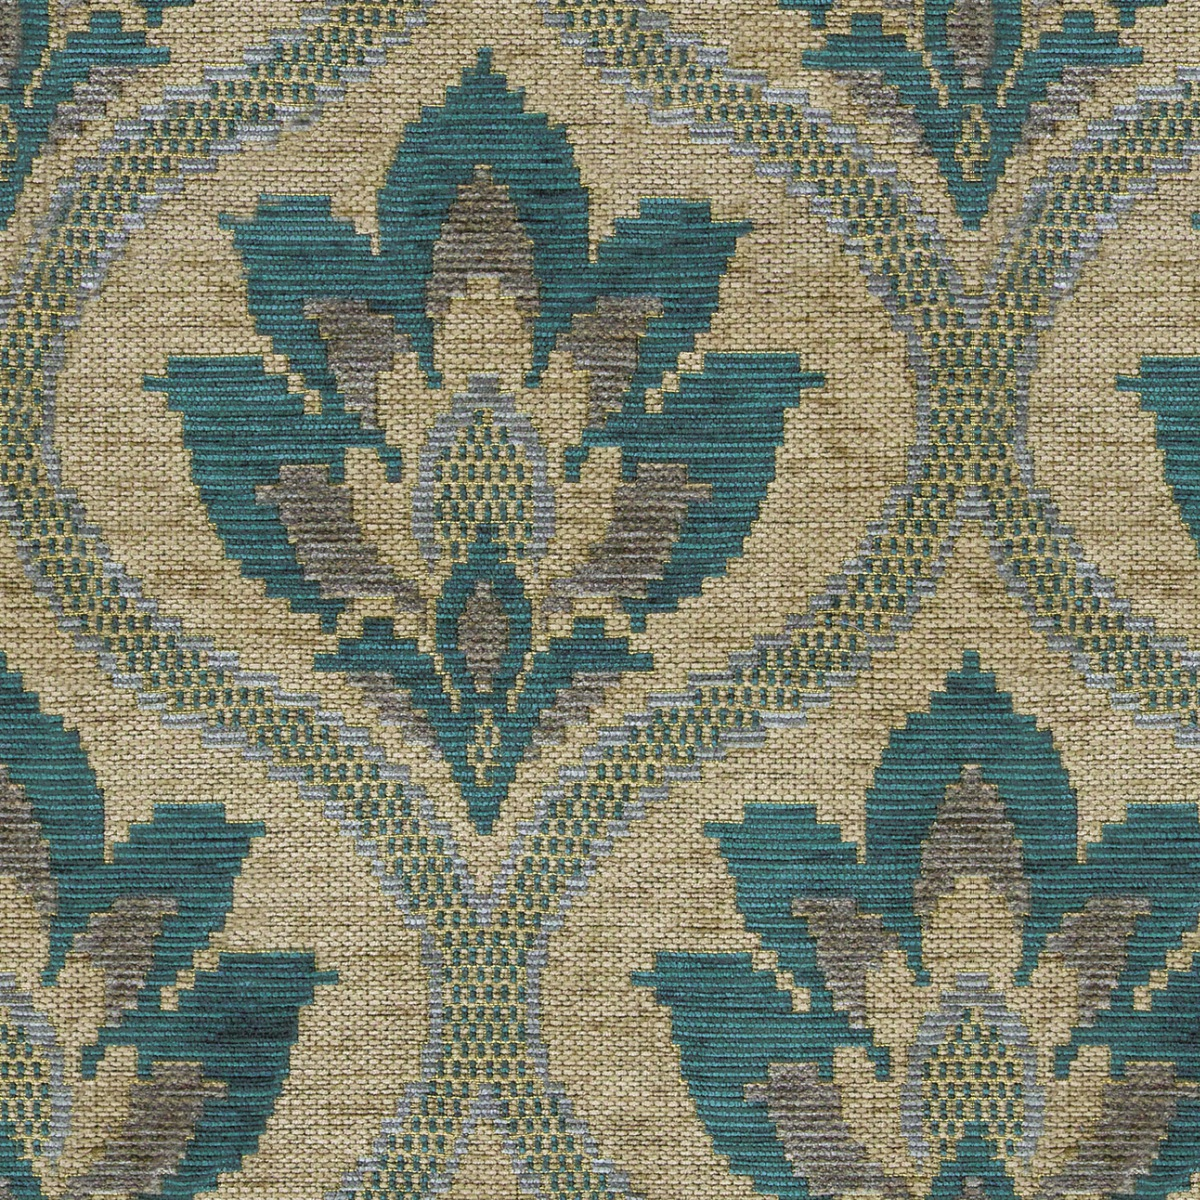 Brington Damask – Teal\Mink